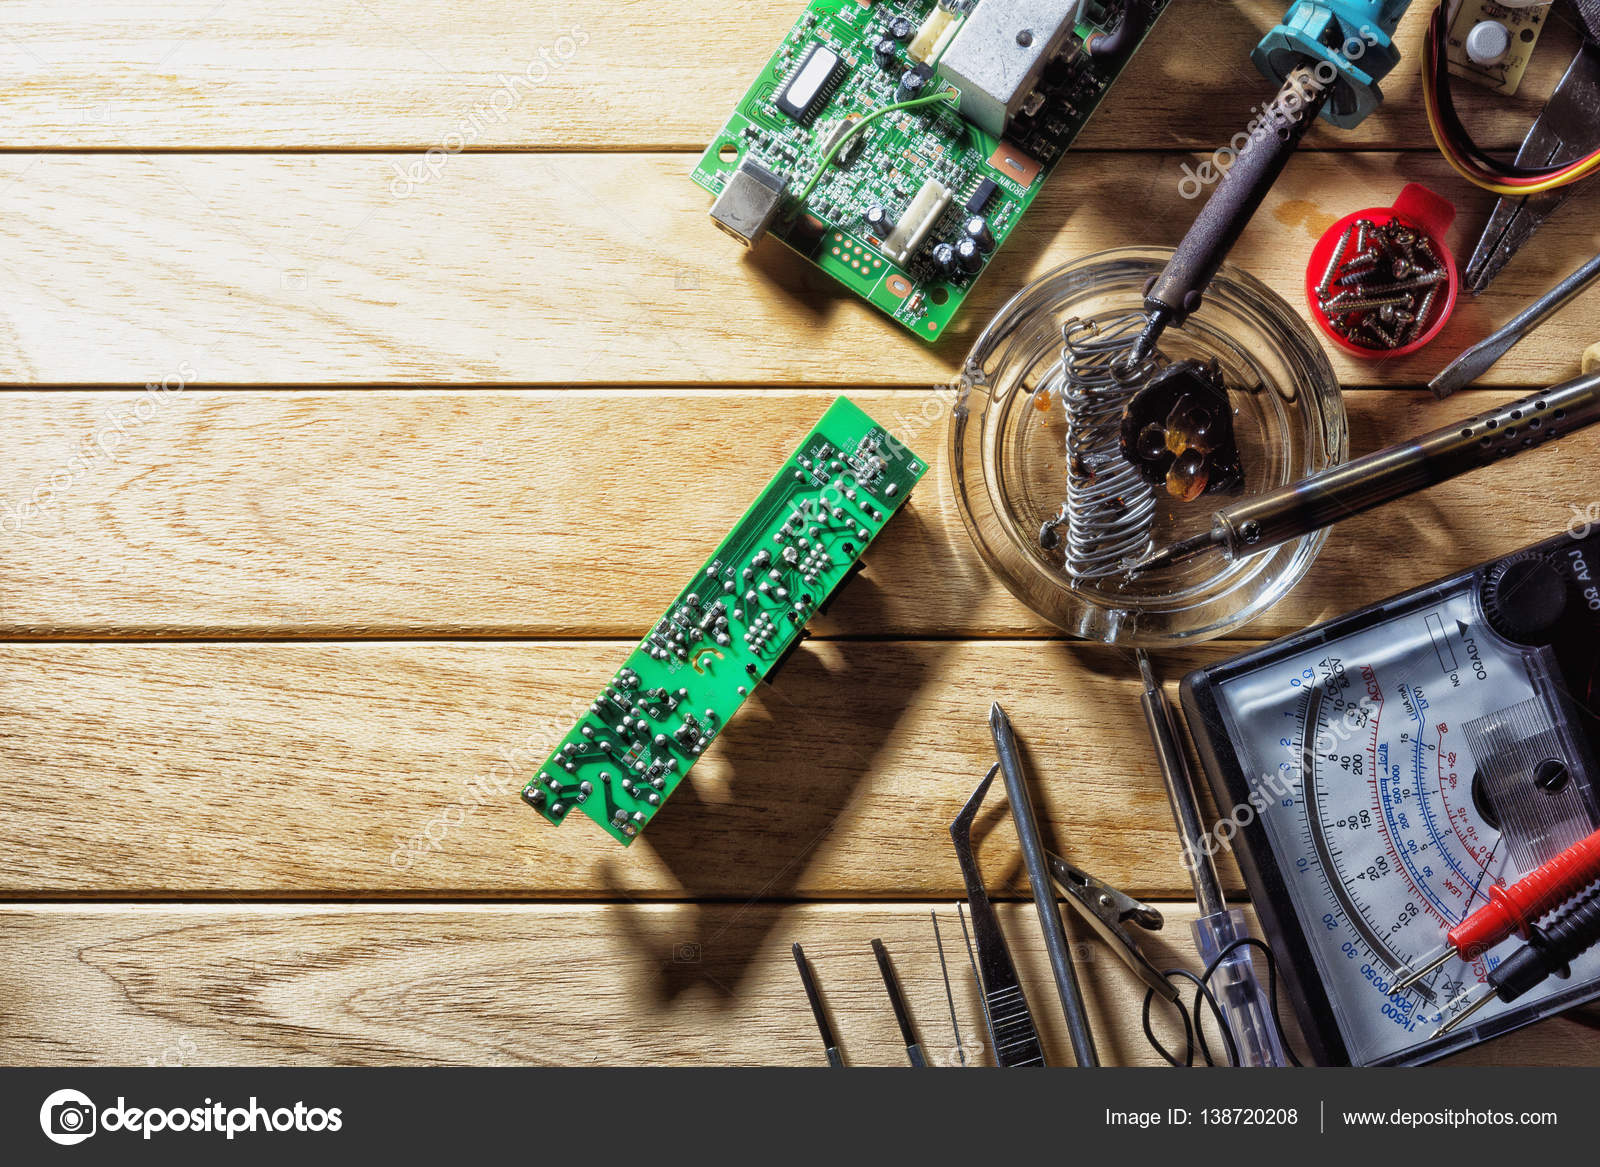 Equipment For Soldering Electronic Circuit Boards Stock Photo What Solder To Use